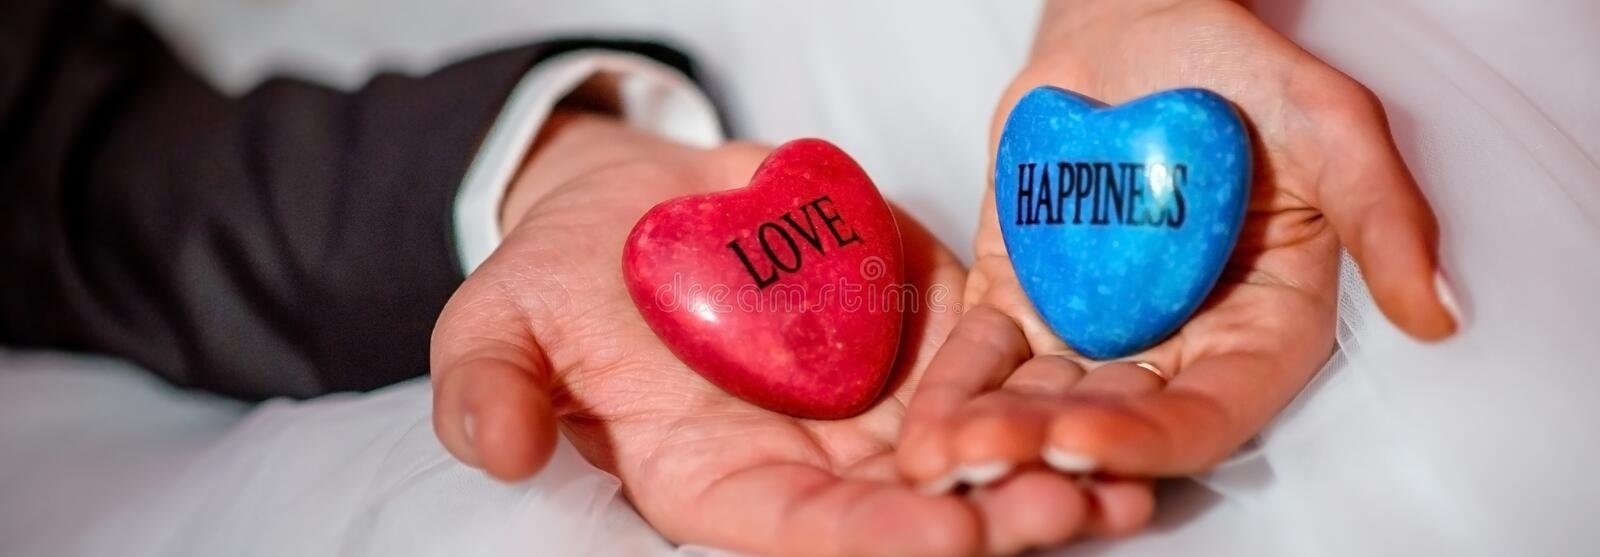 Horizontal image hands of bride and groom holding stones with love and happiness words. Hands of bride and groom holding stones with love and happiness words royalty free stock photo